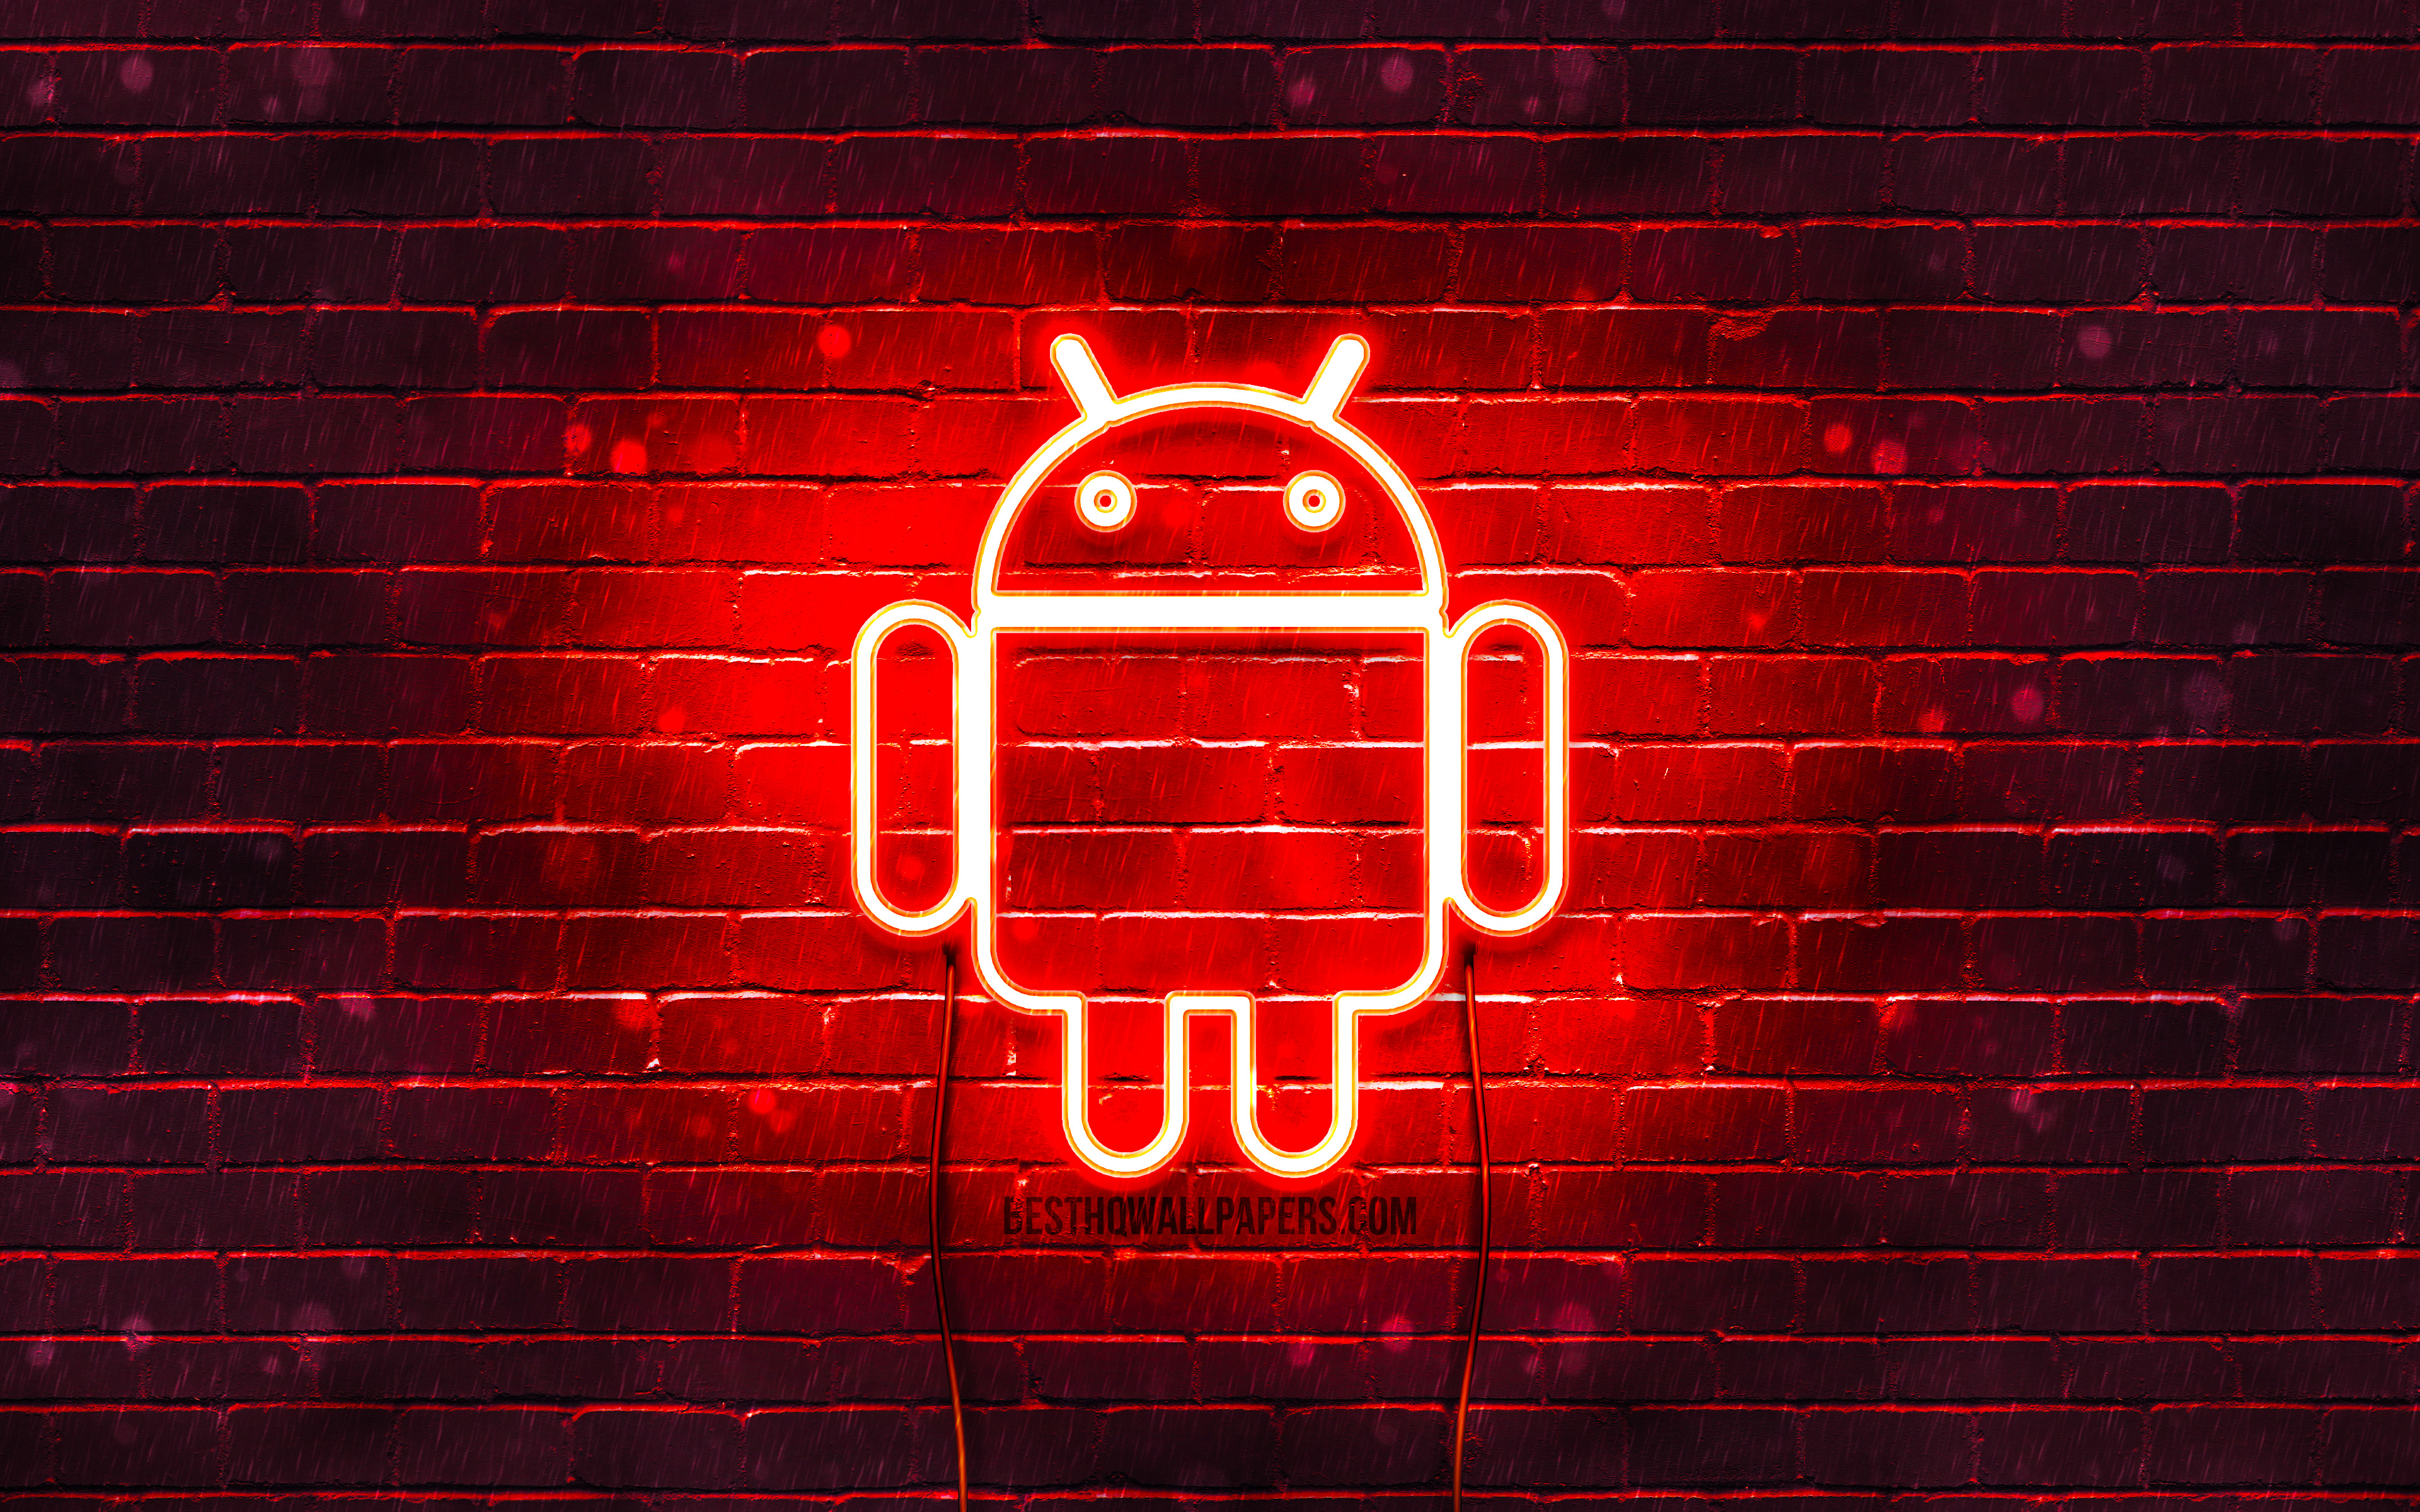 Android Red Logo, 4k, Red Brickwall, Android Logo ...